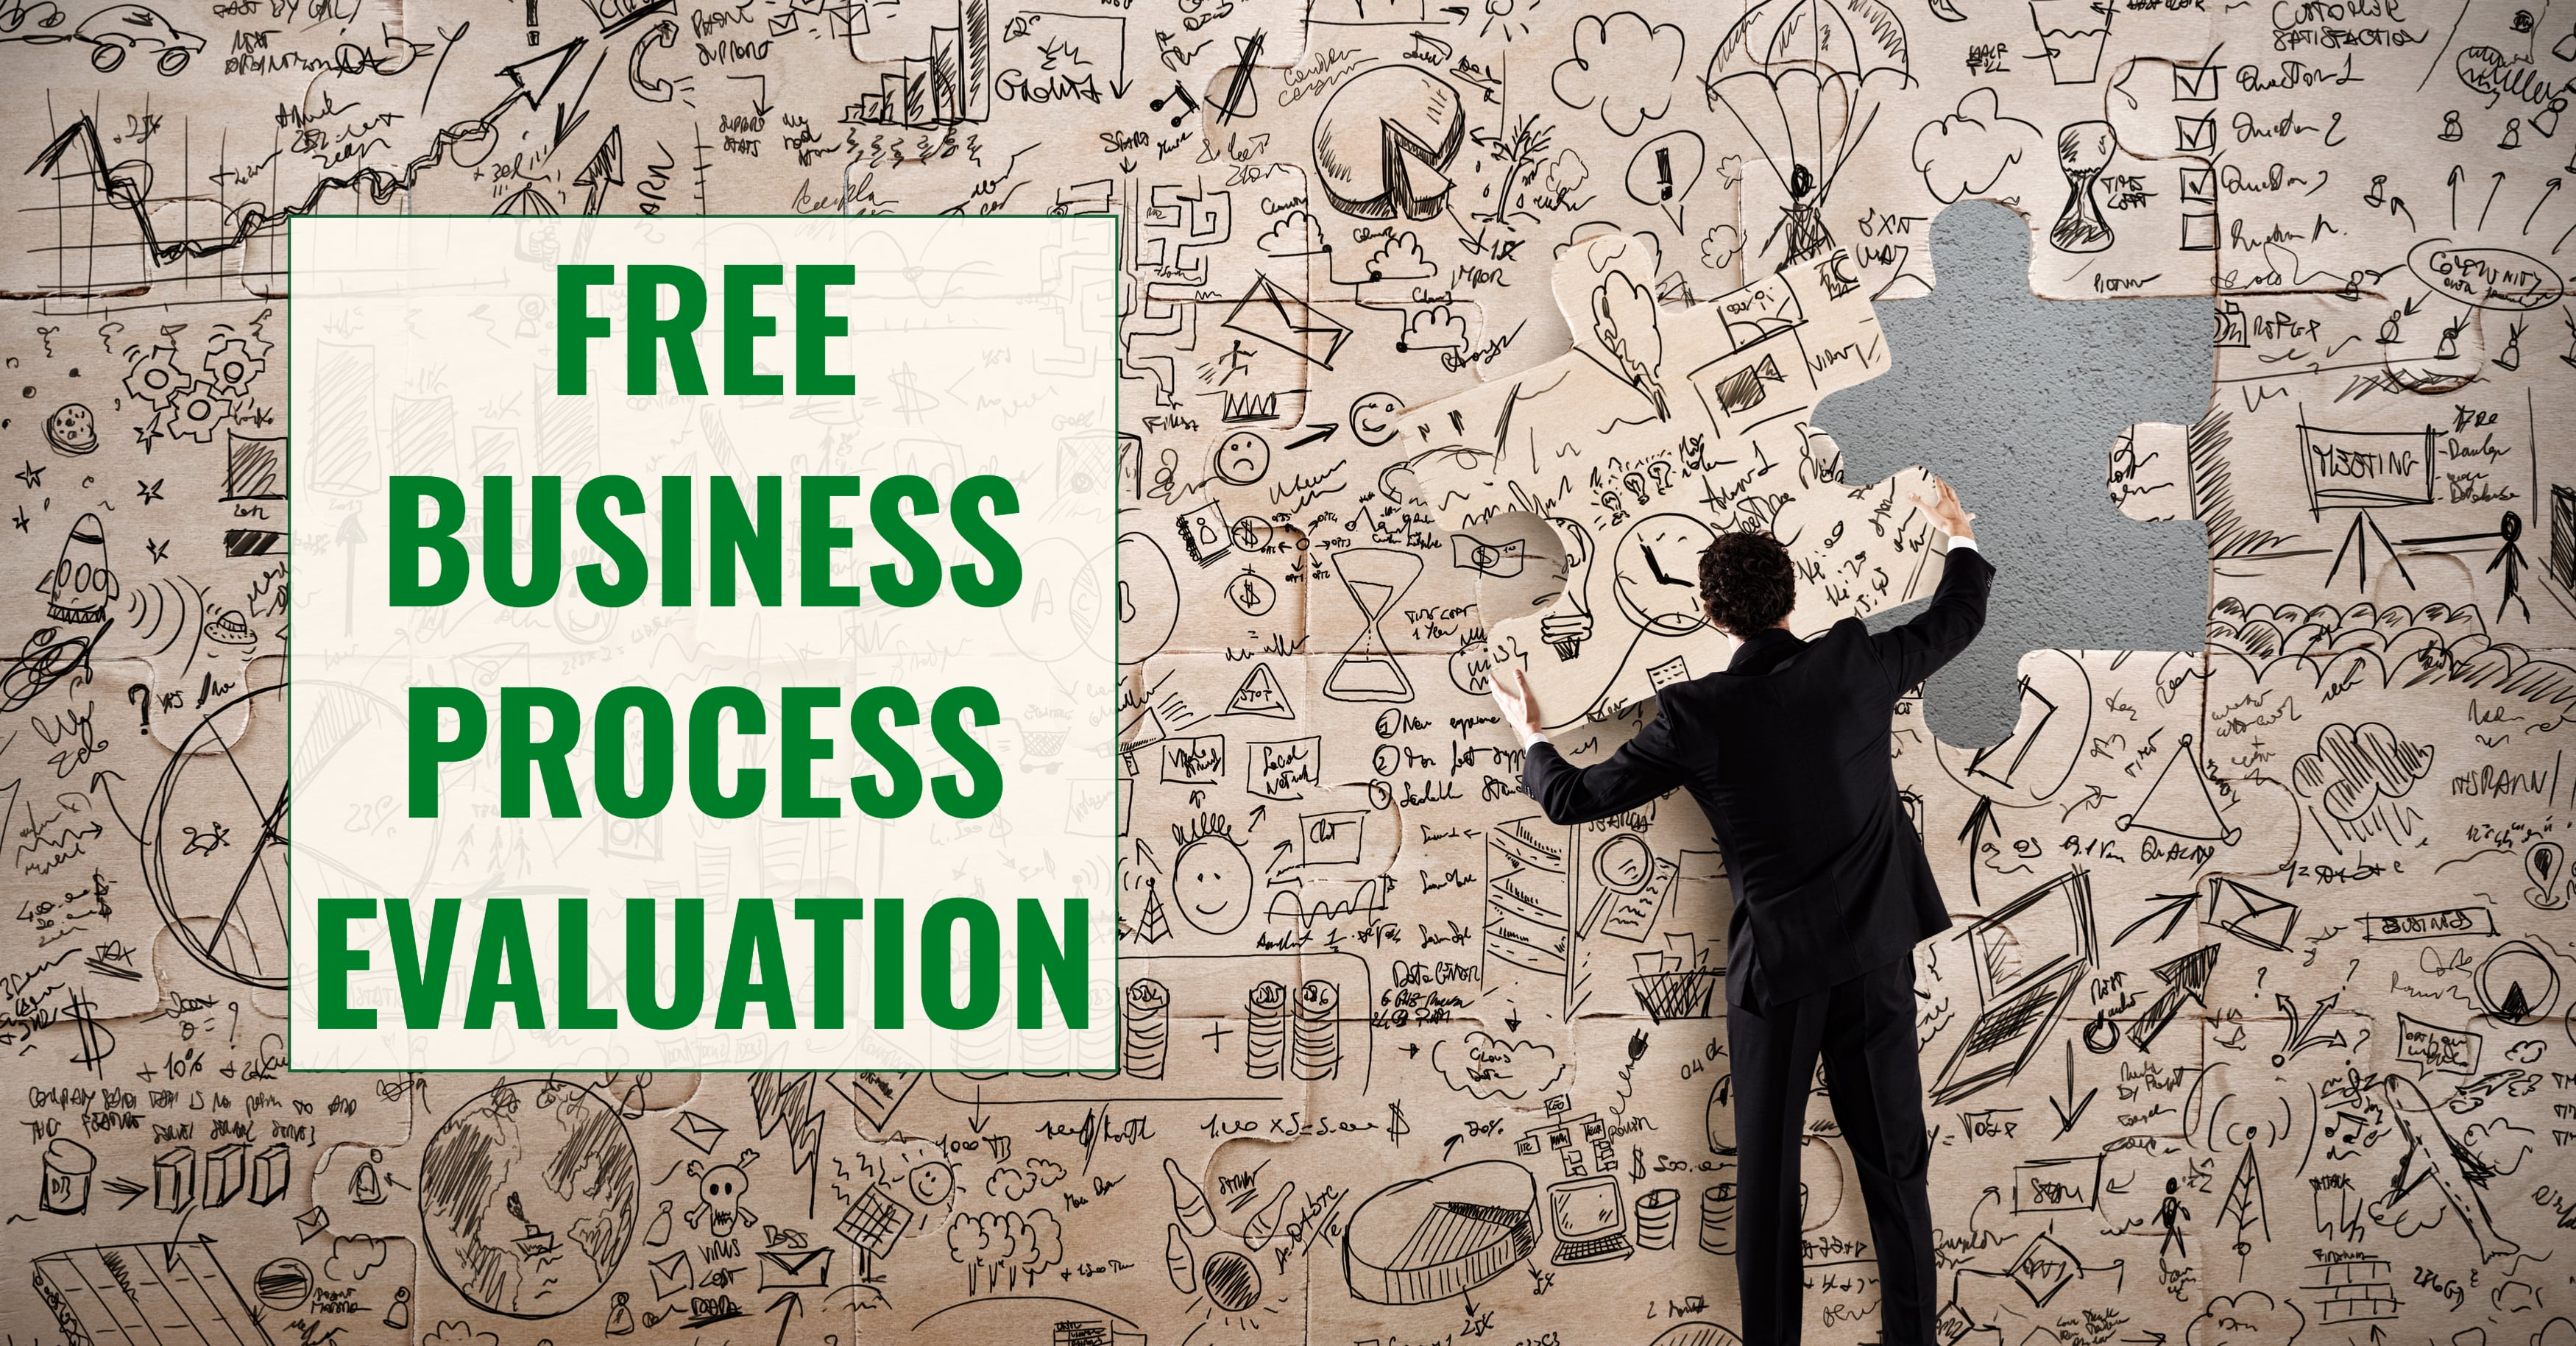 Get a Free Business Process Evaluation